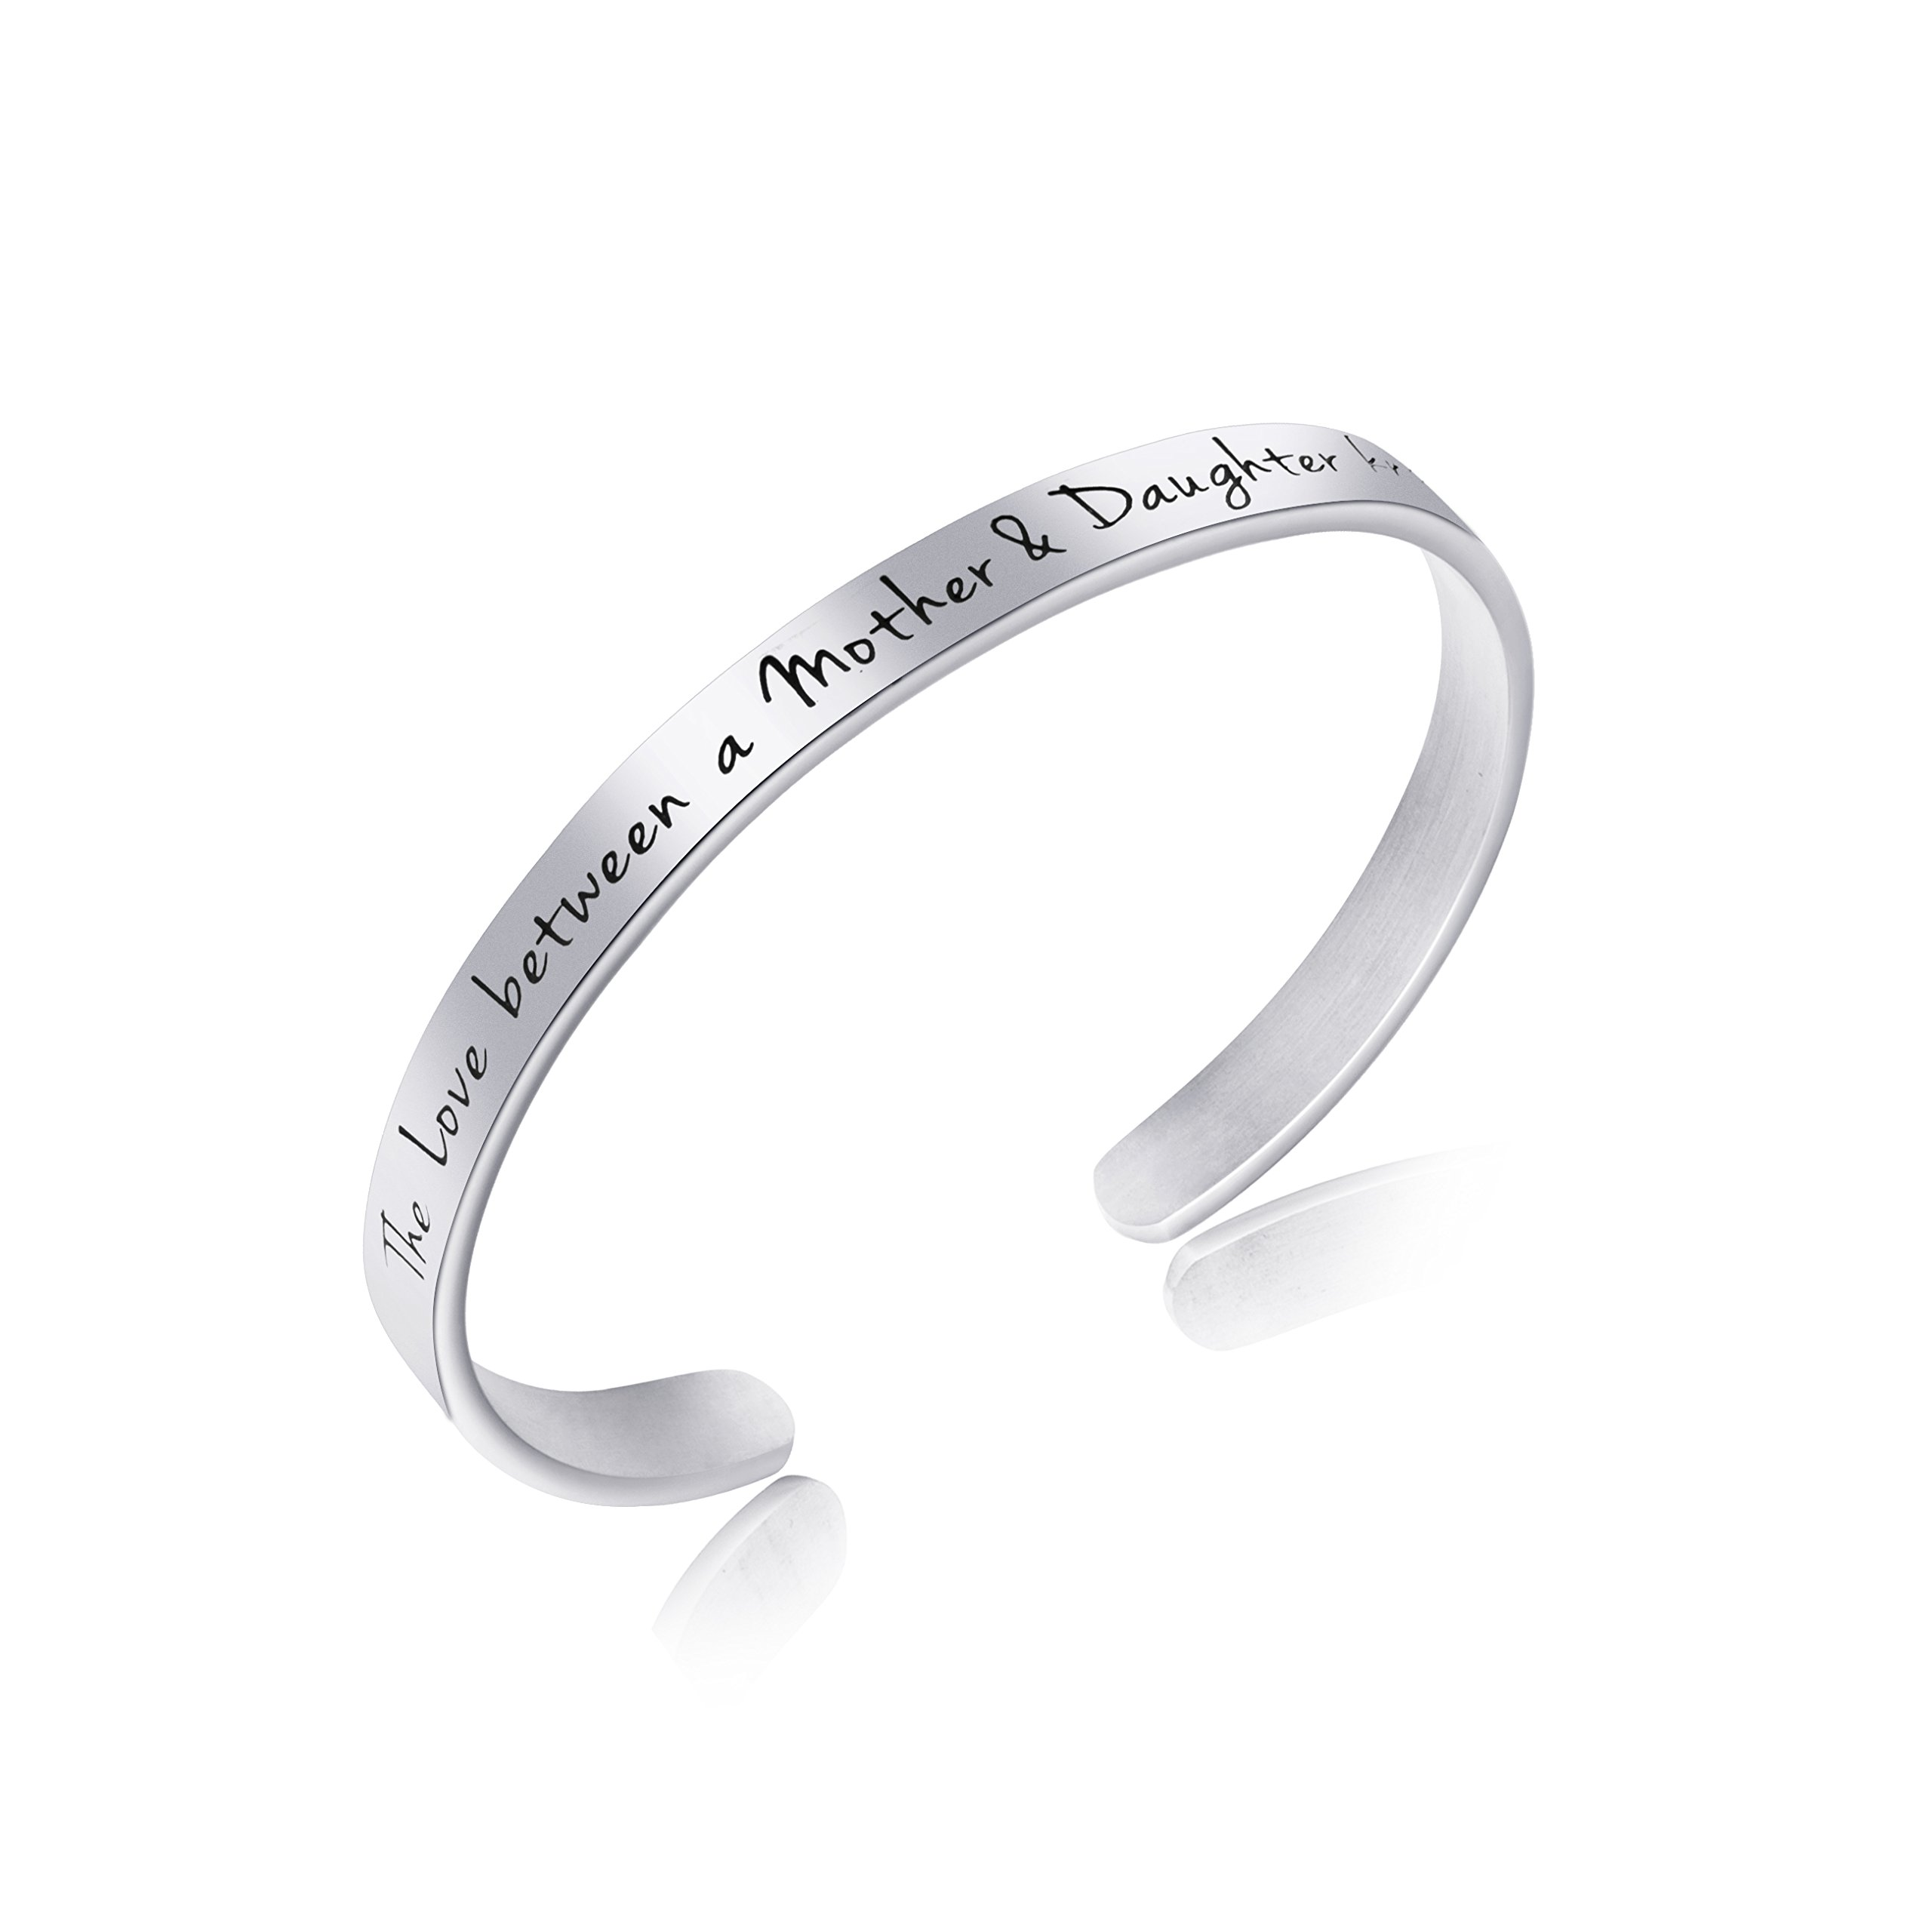 Awegift Bracelets Mother's Day Jewelry Engraved Cuff Bangle Personalized Gifts Mom The Love between a Mother & Daughter knows no distance